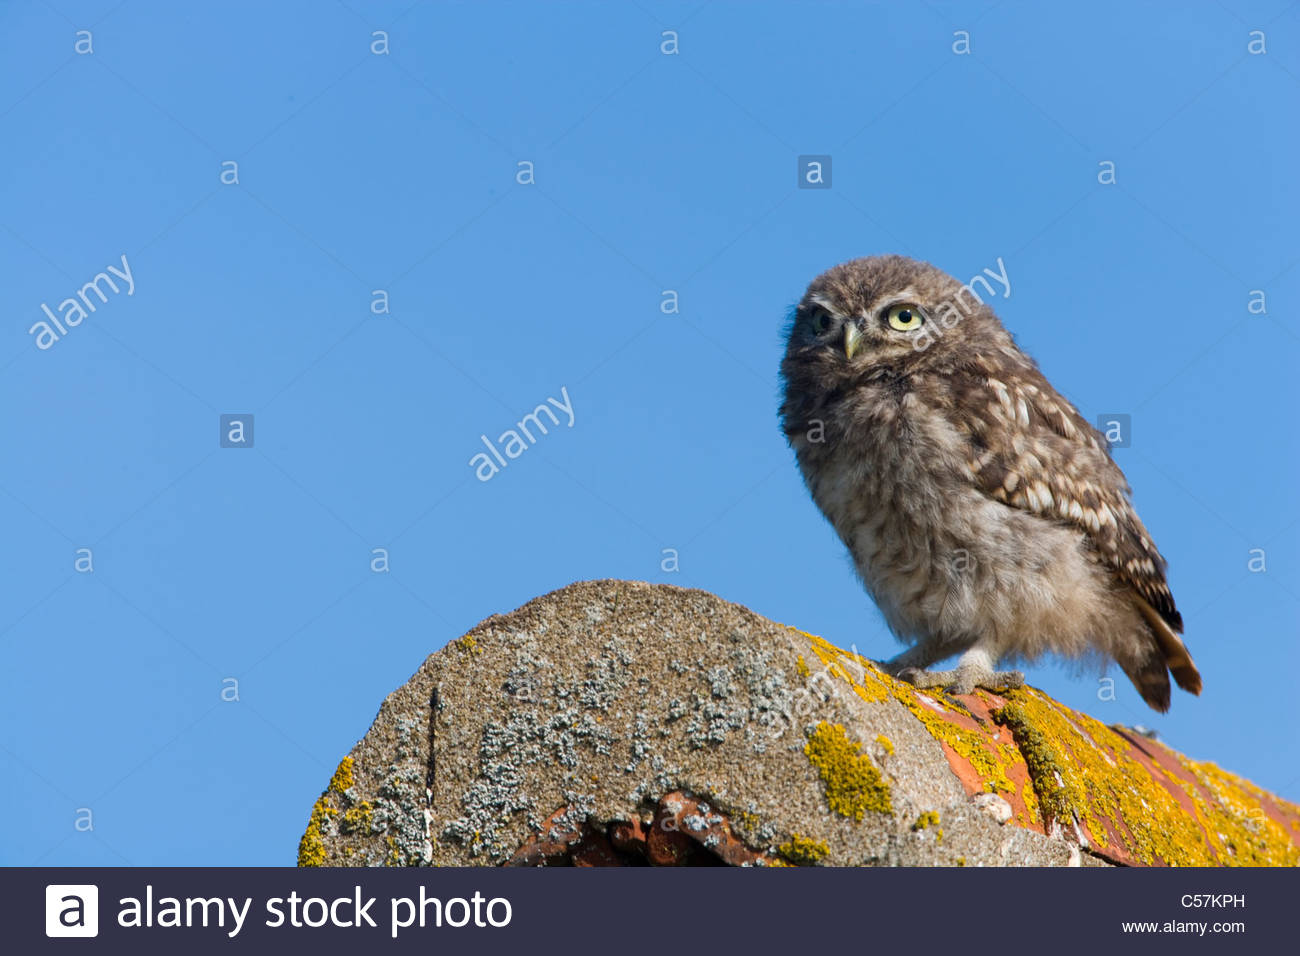 Little Owl on the roof of a derelict building. - Stock Image